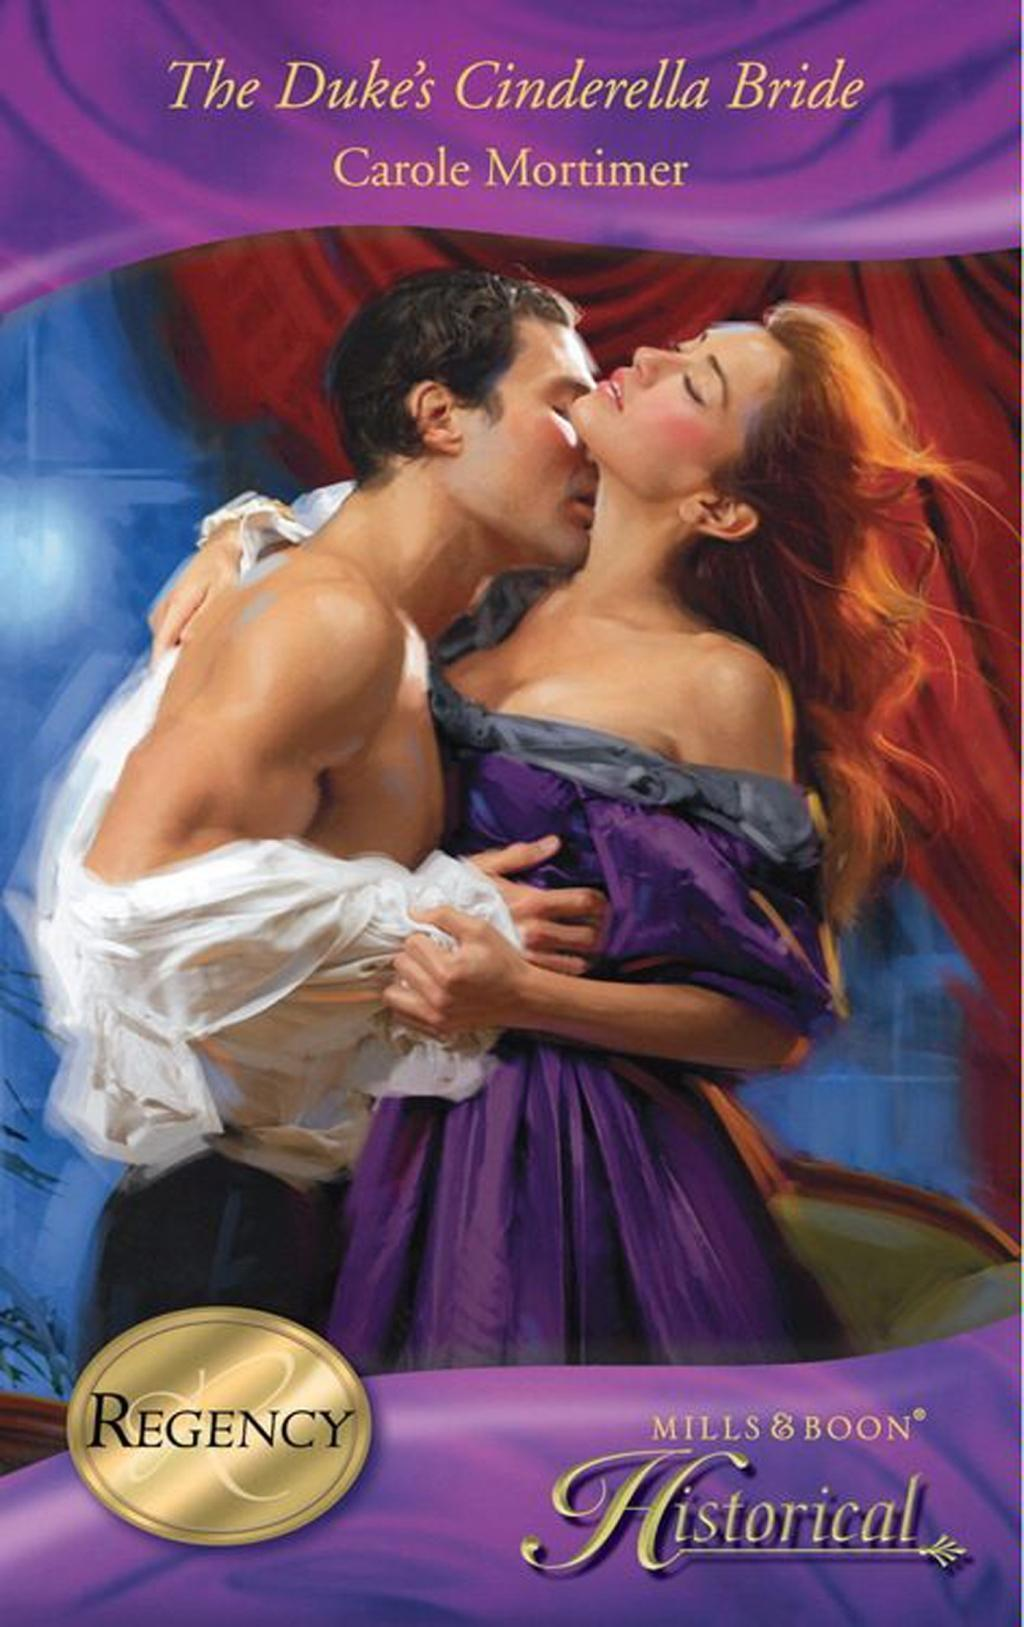 The Duke's Cinderella Bride (Mills & Boon Historical) (The Notorious St Claires, Book 1)